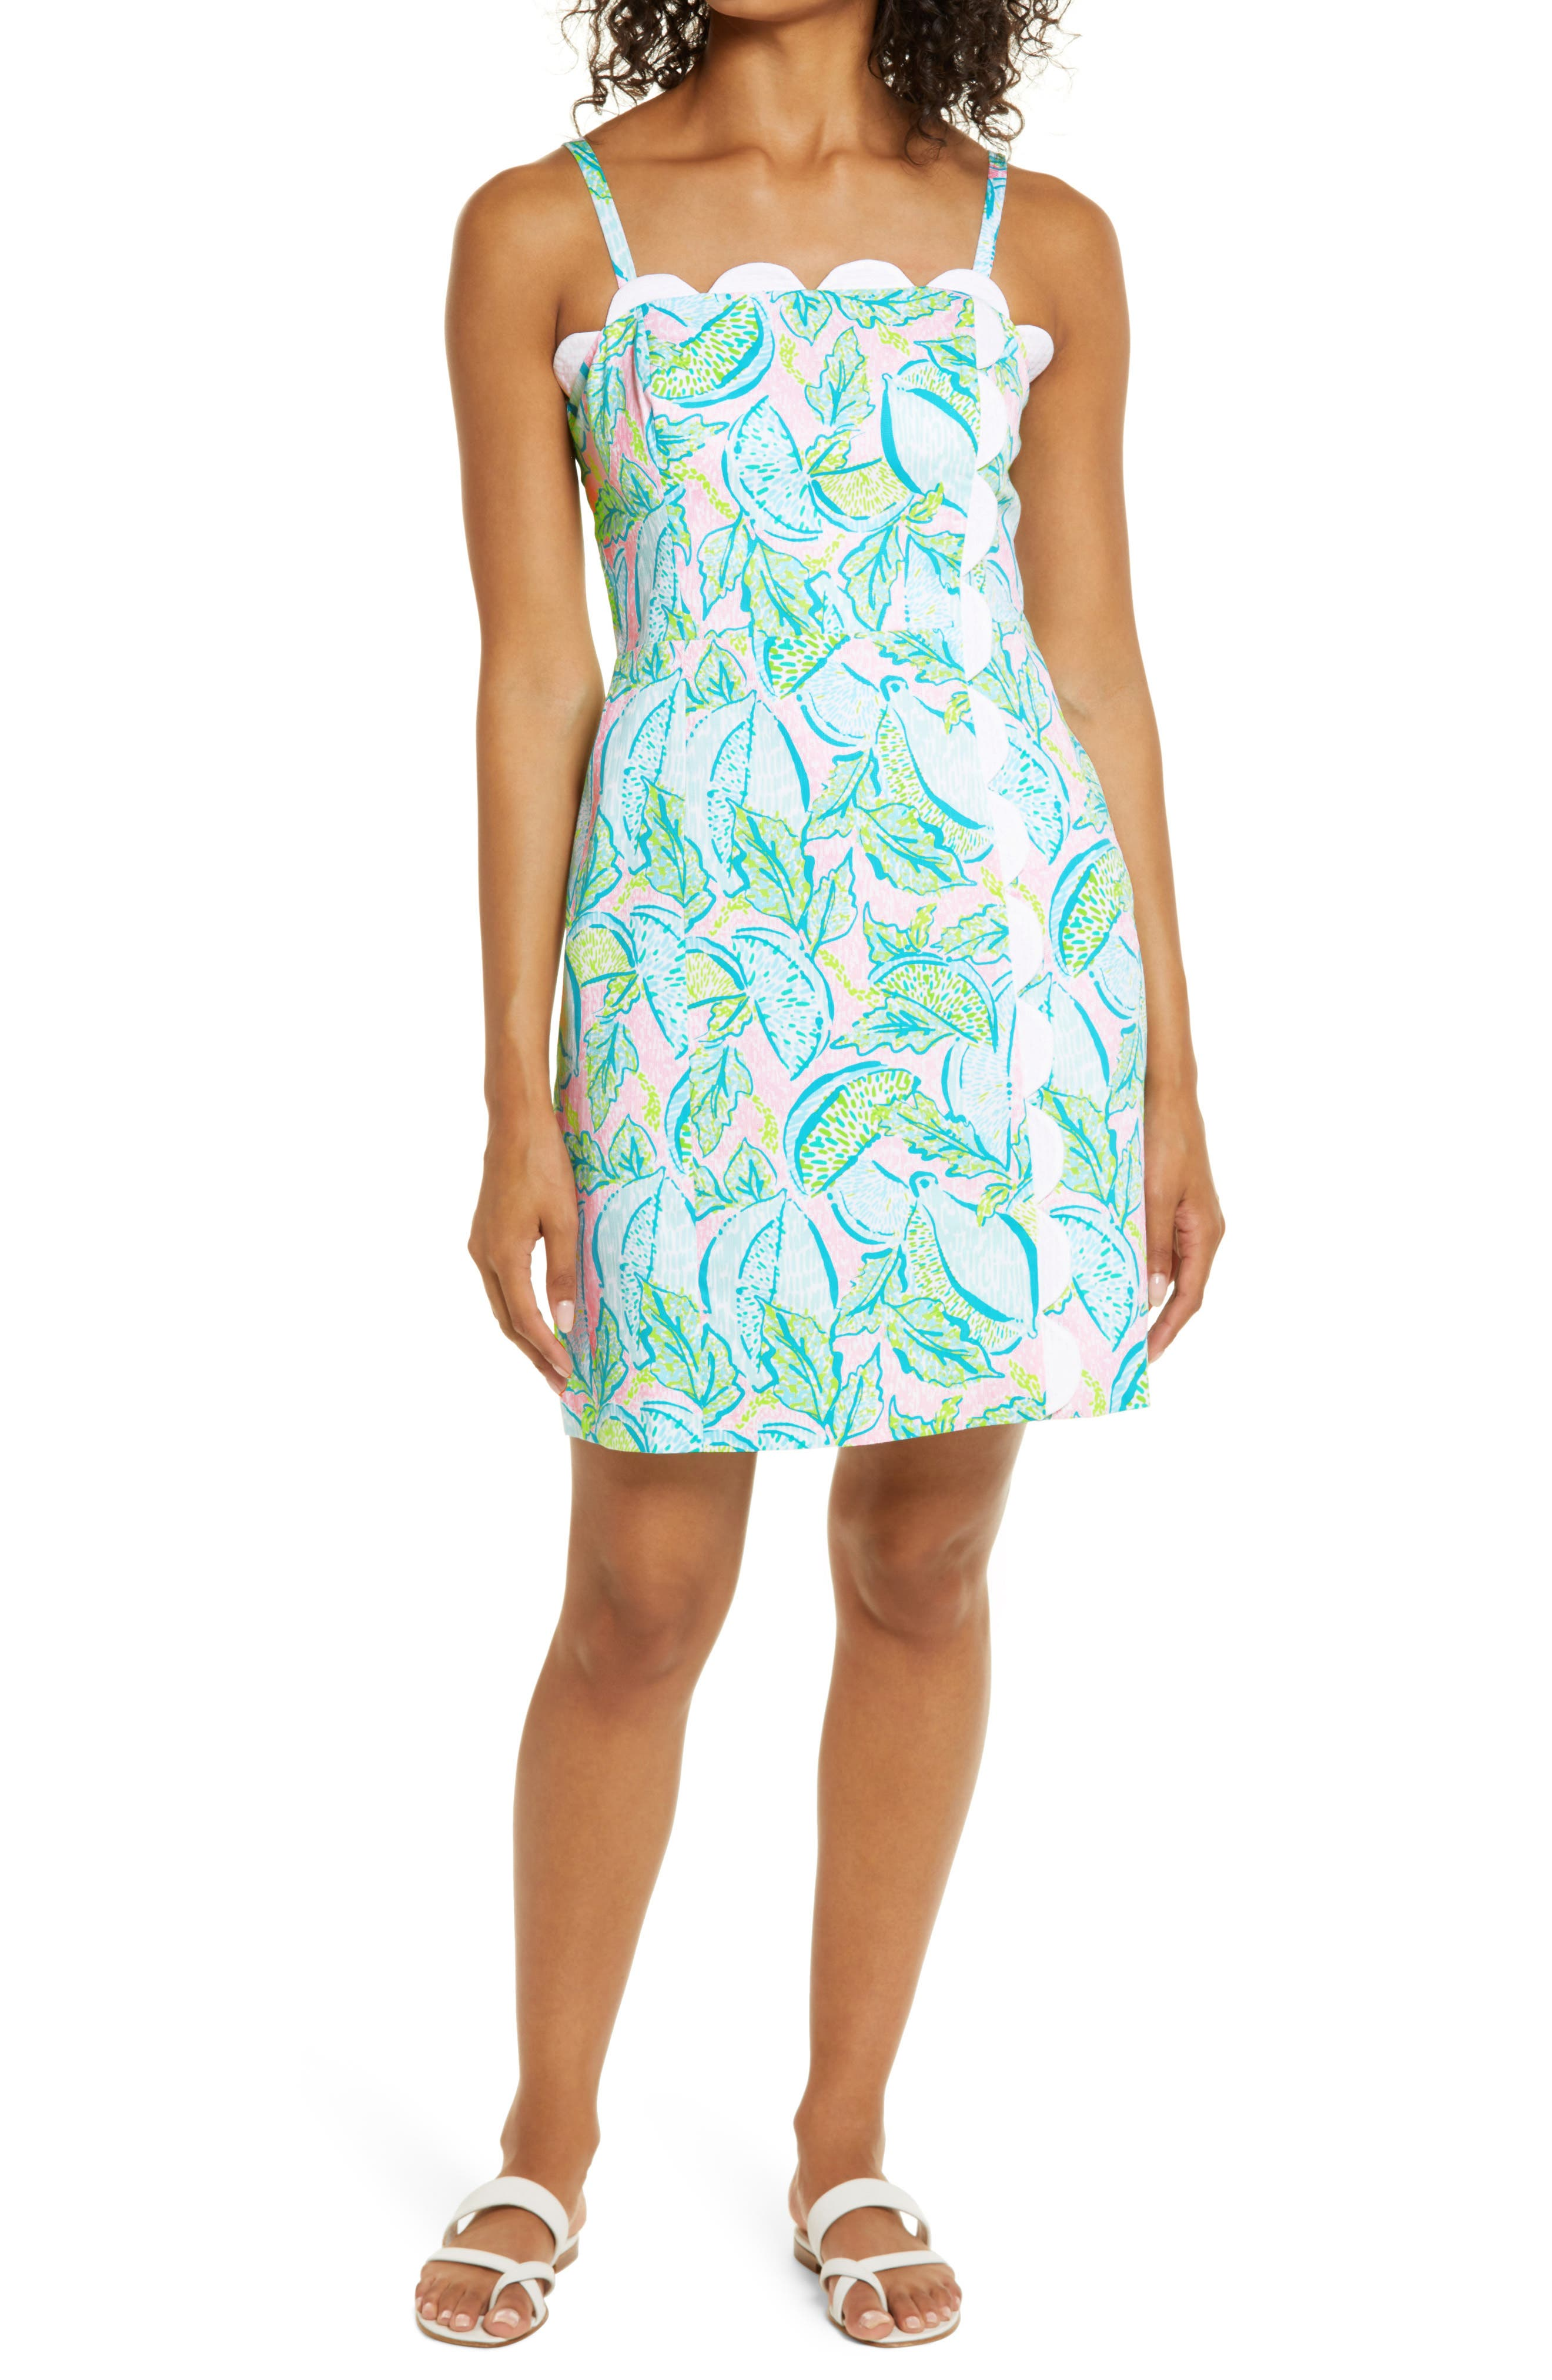 Scalloped detailing highlights the neckline of a short sheath dress in a pretty botanical print. Style Name: Lilly Pulitzer Mercede Minidress. Style Number: 6082621. Available in stores.